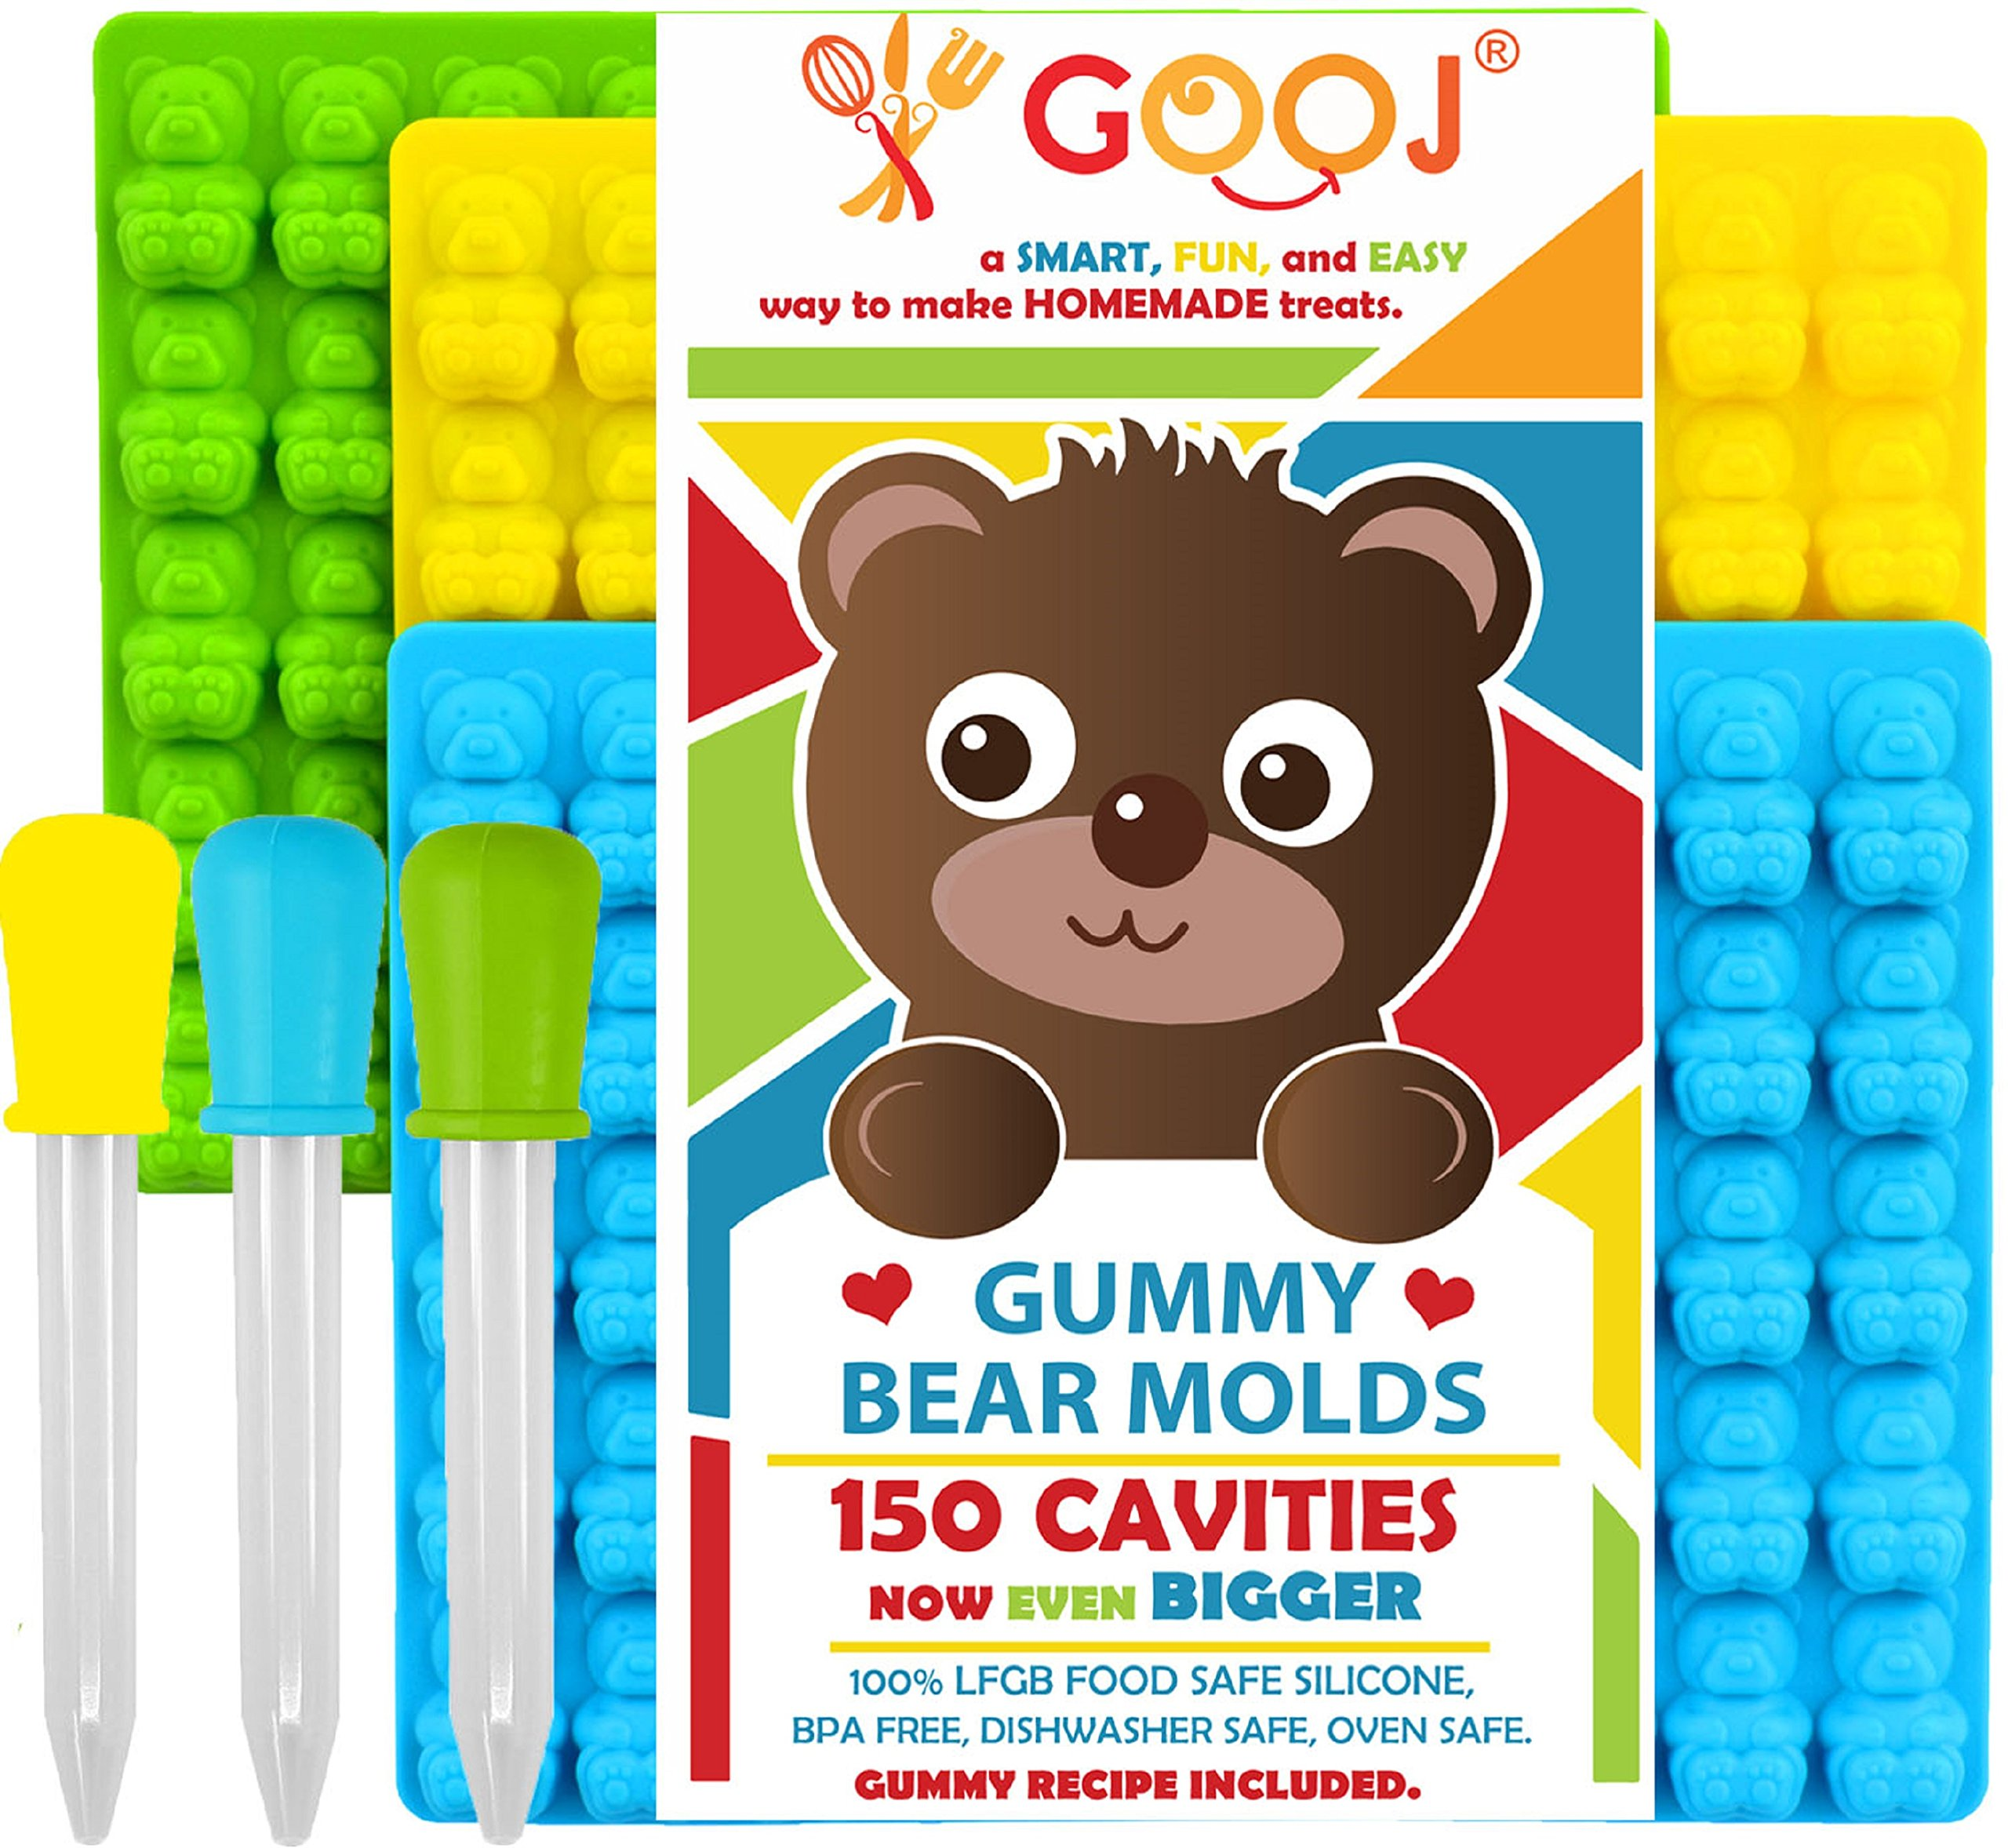 New Even Bigger Gummy Bear Molds Silicone 3 Pack + 3 Droppers - LFGB, FDA Gummy Bears molds, non BPA Candy Molds - Gummy candy size even bigger than the Store-Bought Gummy Bear.